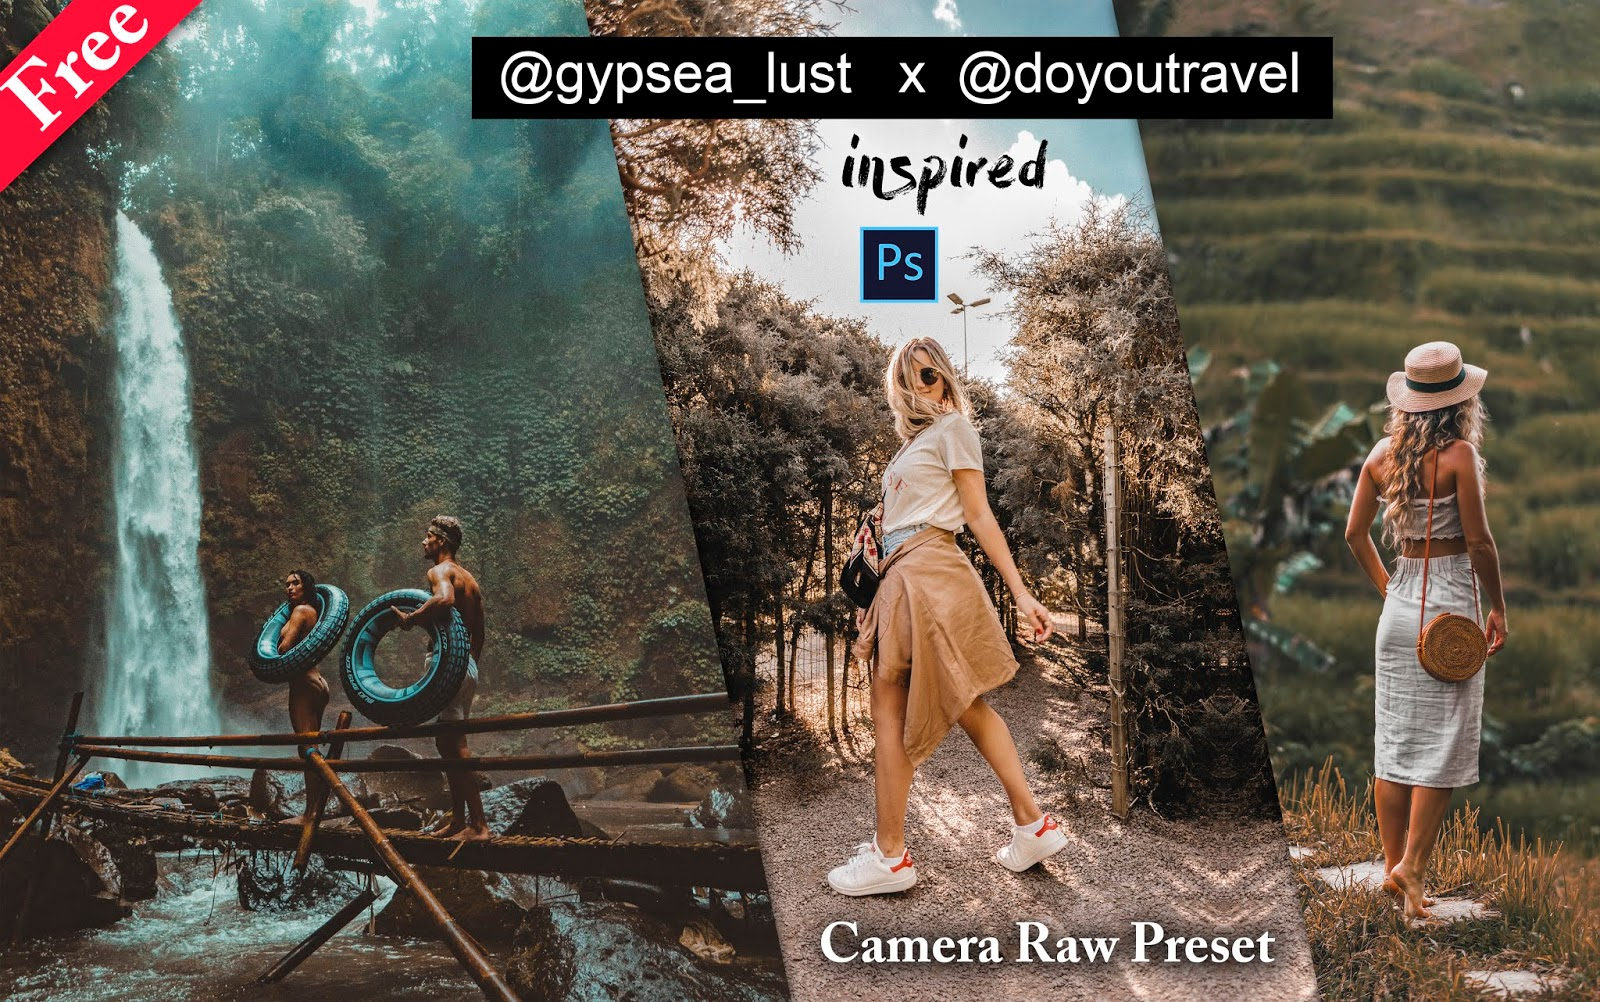 Download Gypsea_Lust Camera Raw Preset for Free | How to Edit Photos Like @gypsea_lust in Photoshop